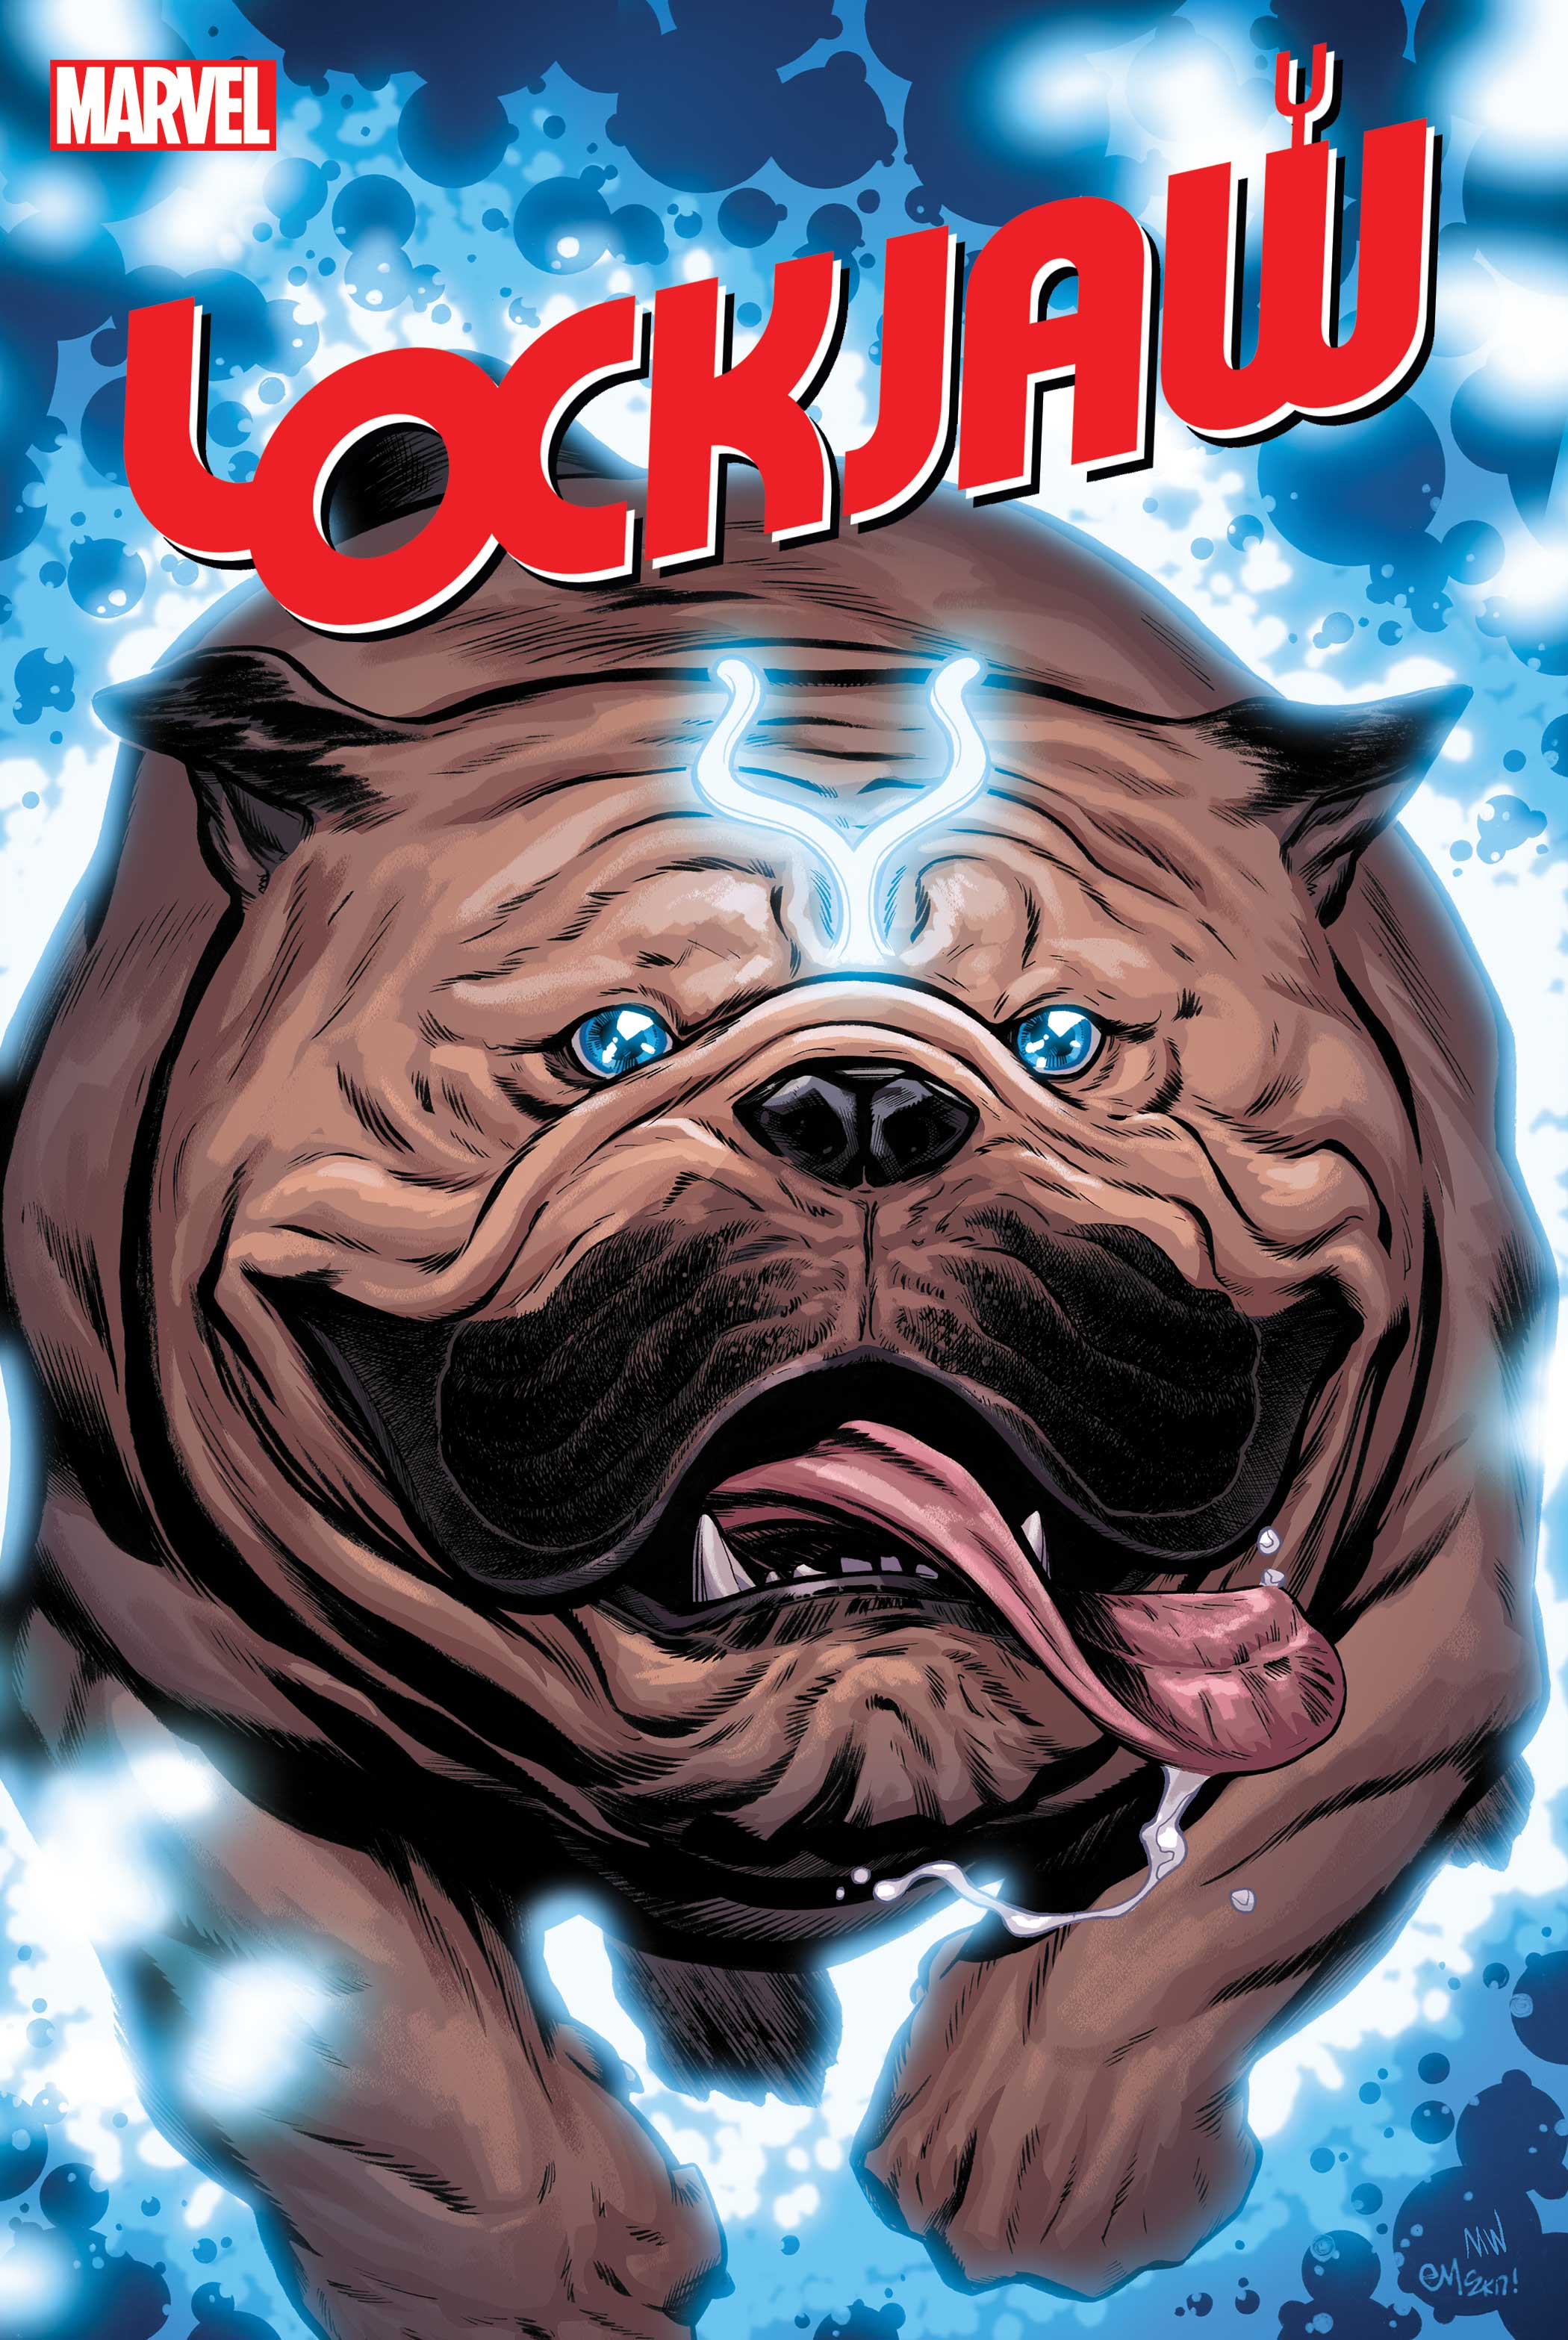 Marvel Announces LOCKJAW Comic